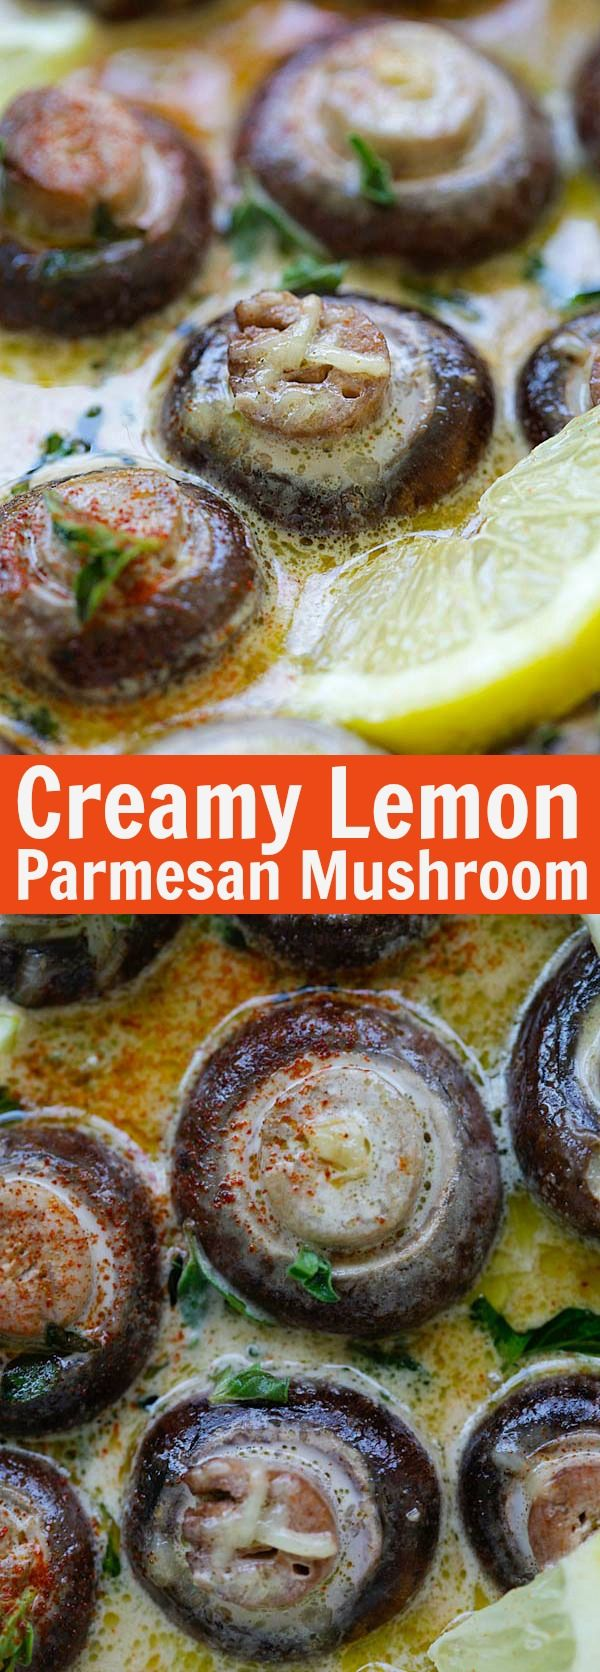 Creamy Lemon Parmesan Mushrooms – BEST mushrooms you'll ever make. Soaked in a creamy, cheesy and lemony Parmesan sauce. Perfect recipe that takes 15 mins | rasamalaysia.com